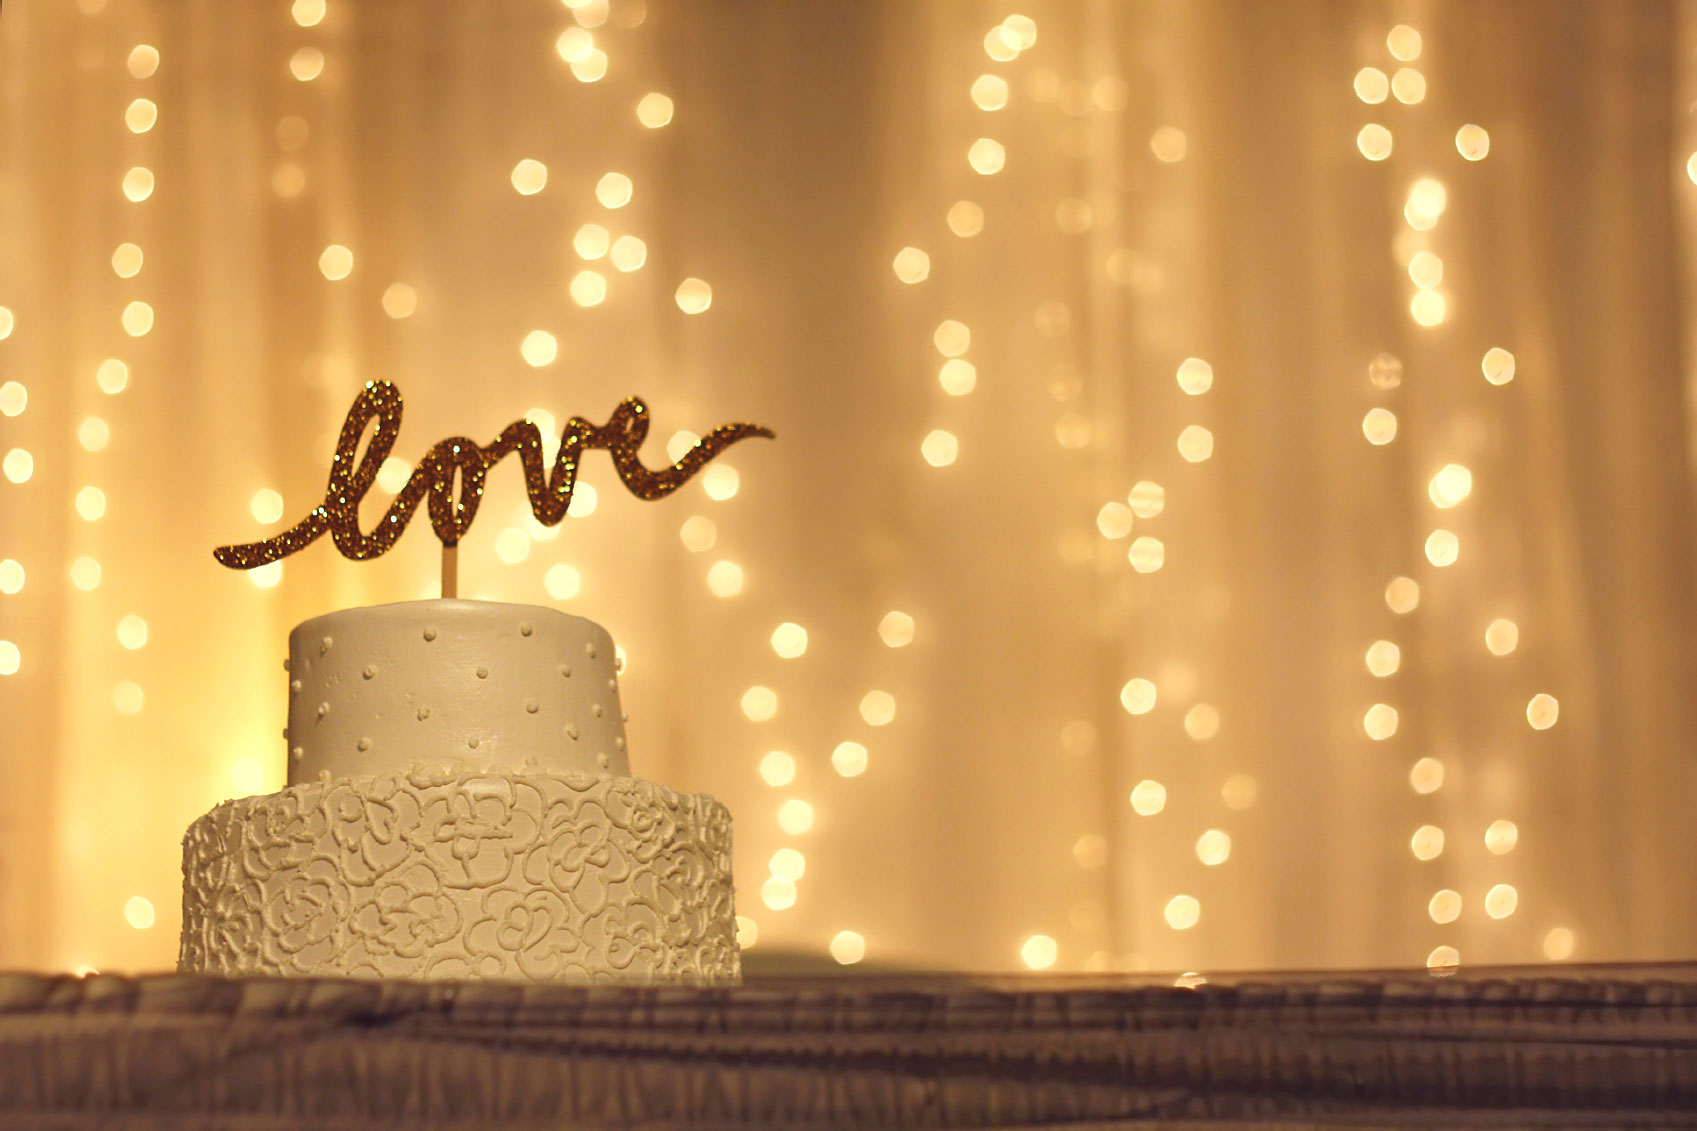 Wedding-Cake-with-LOVE-Topper-000026799105_Medium